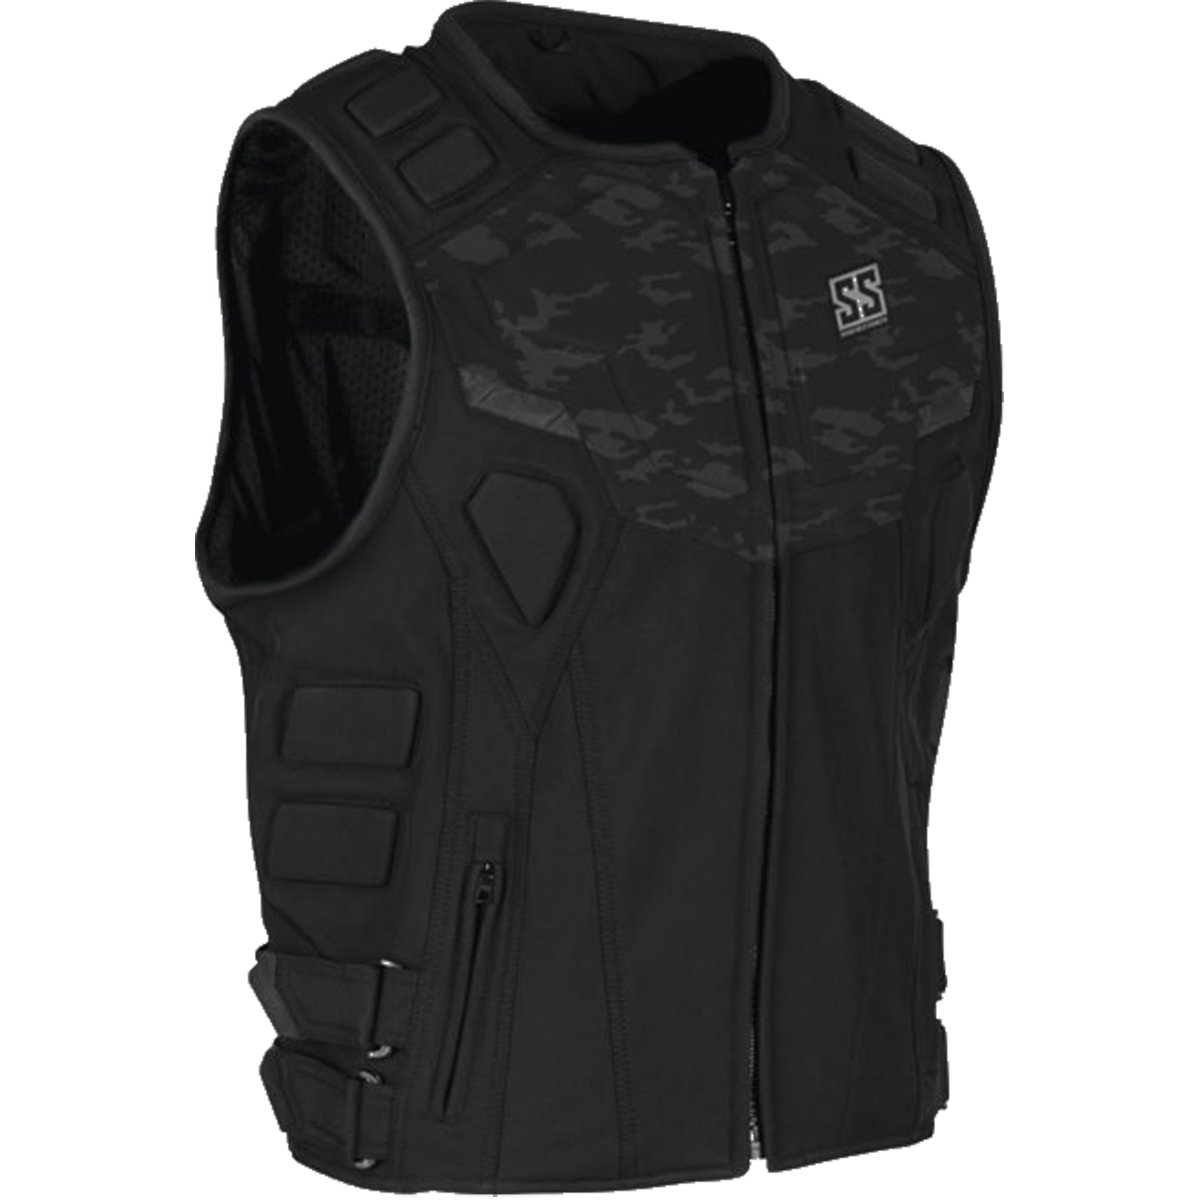 Speed and Strength Critical Mass Armored Men's MX Motorcycle Vest - Camo/Black 3X-Large